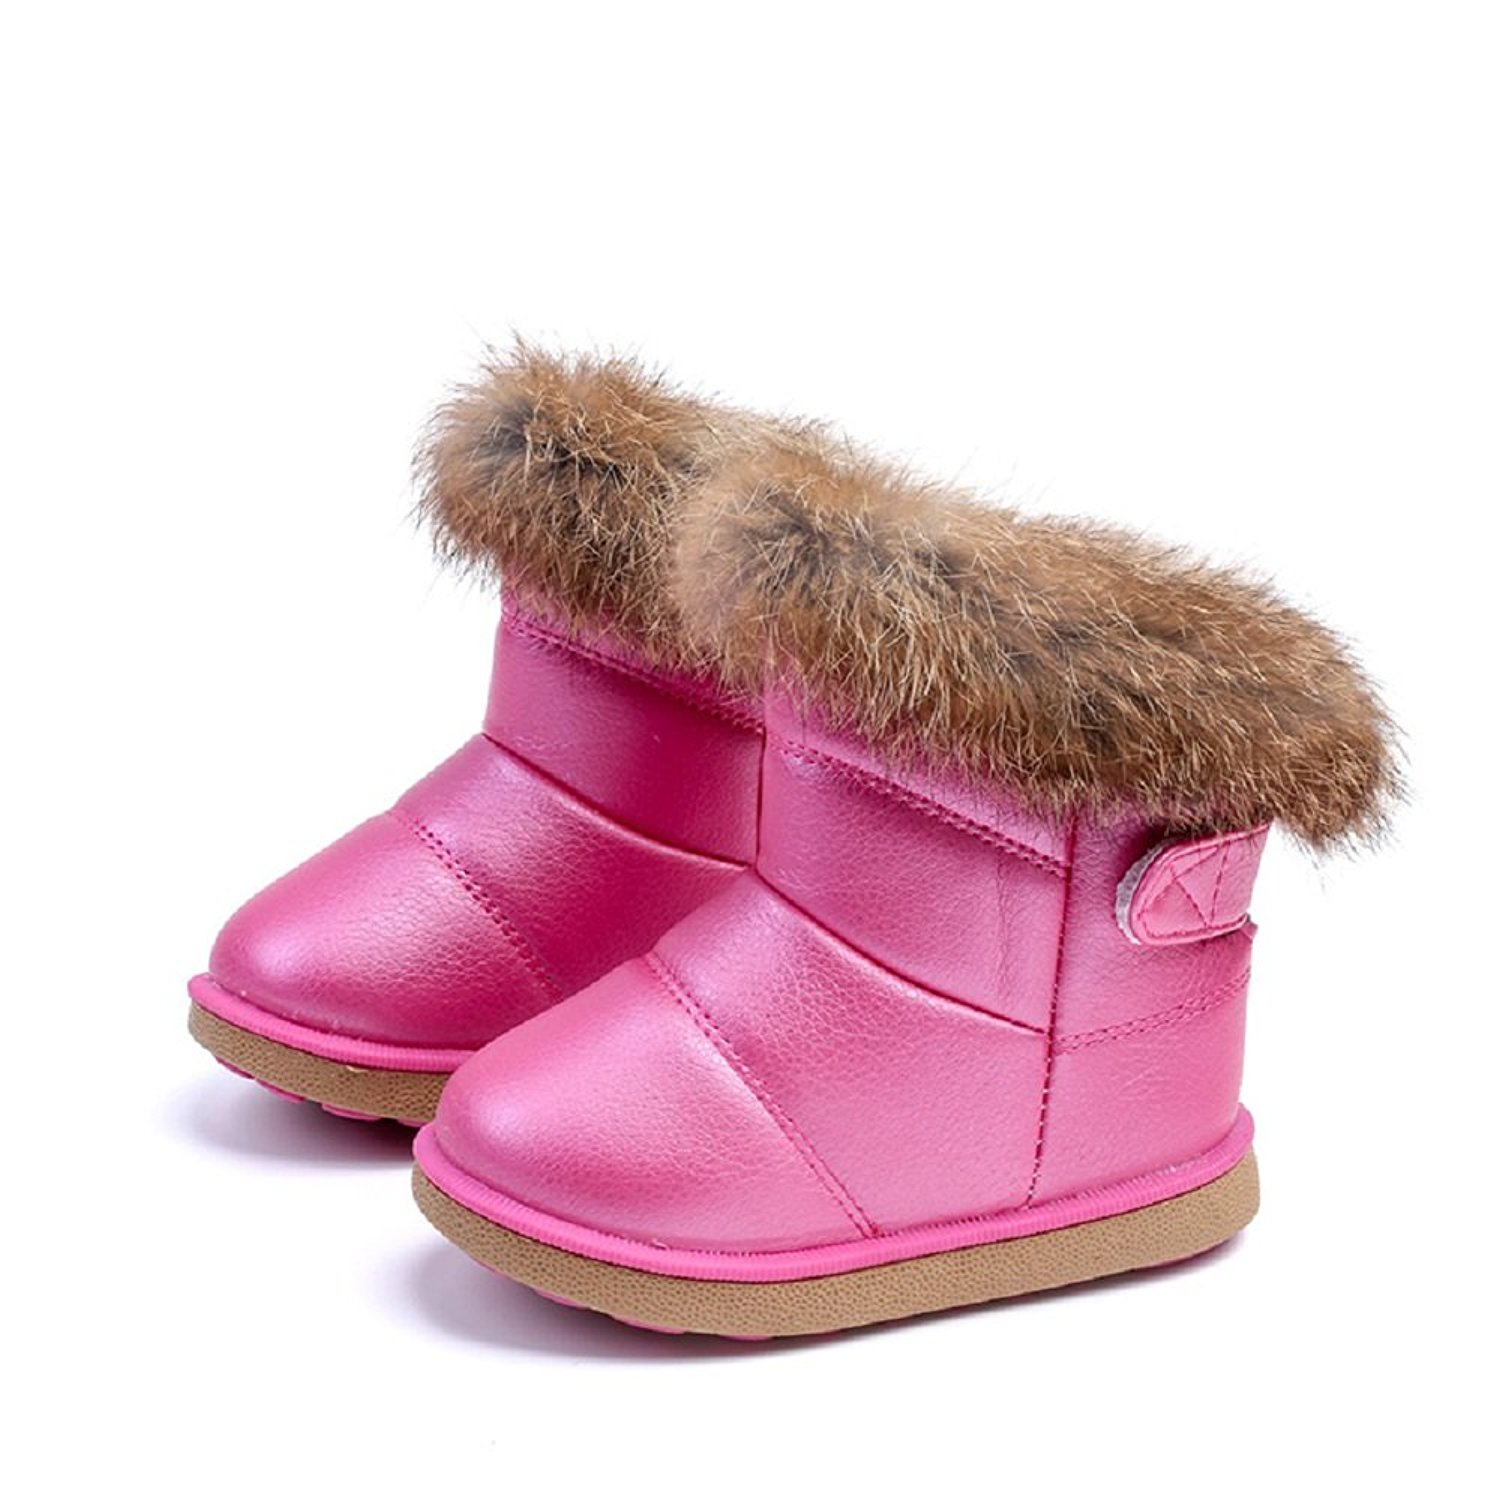 VECJUNIA Girls Boys Thick Suede Leather Snow Boots Outdoor Warm Short Plush Boot Toddler//Little Kid